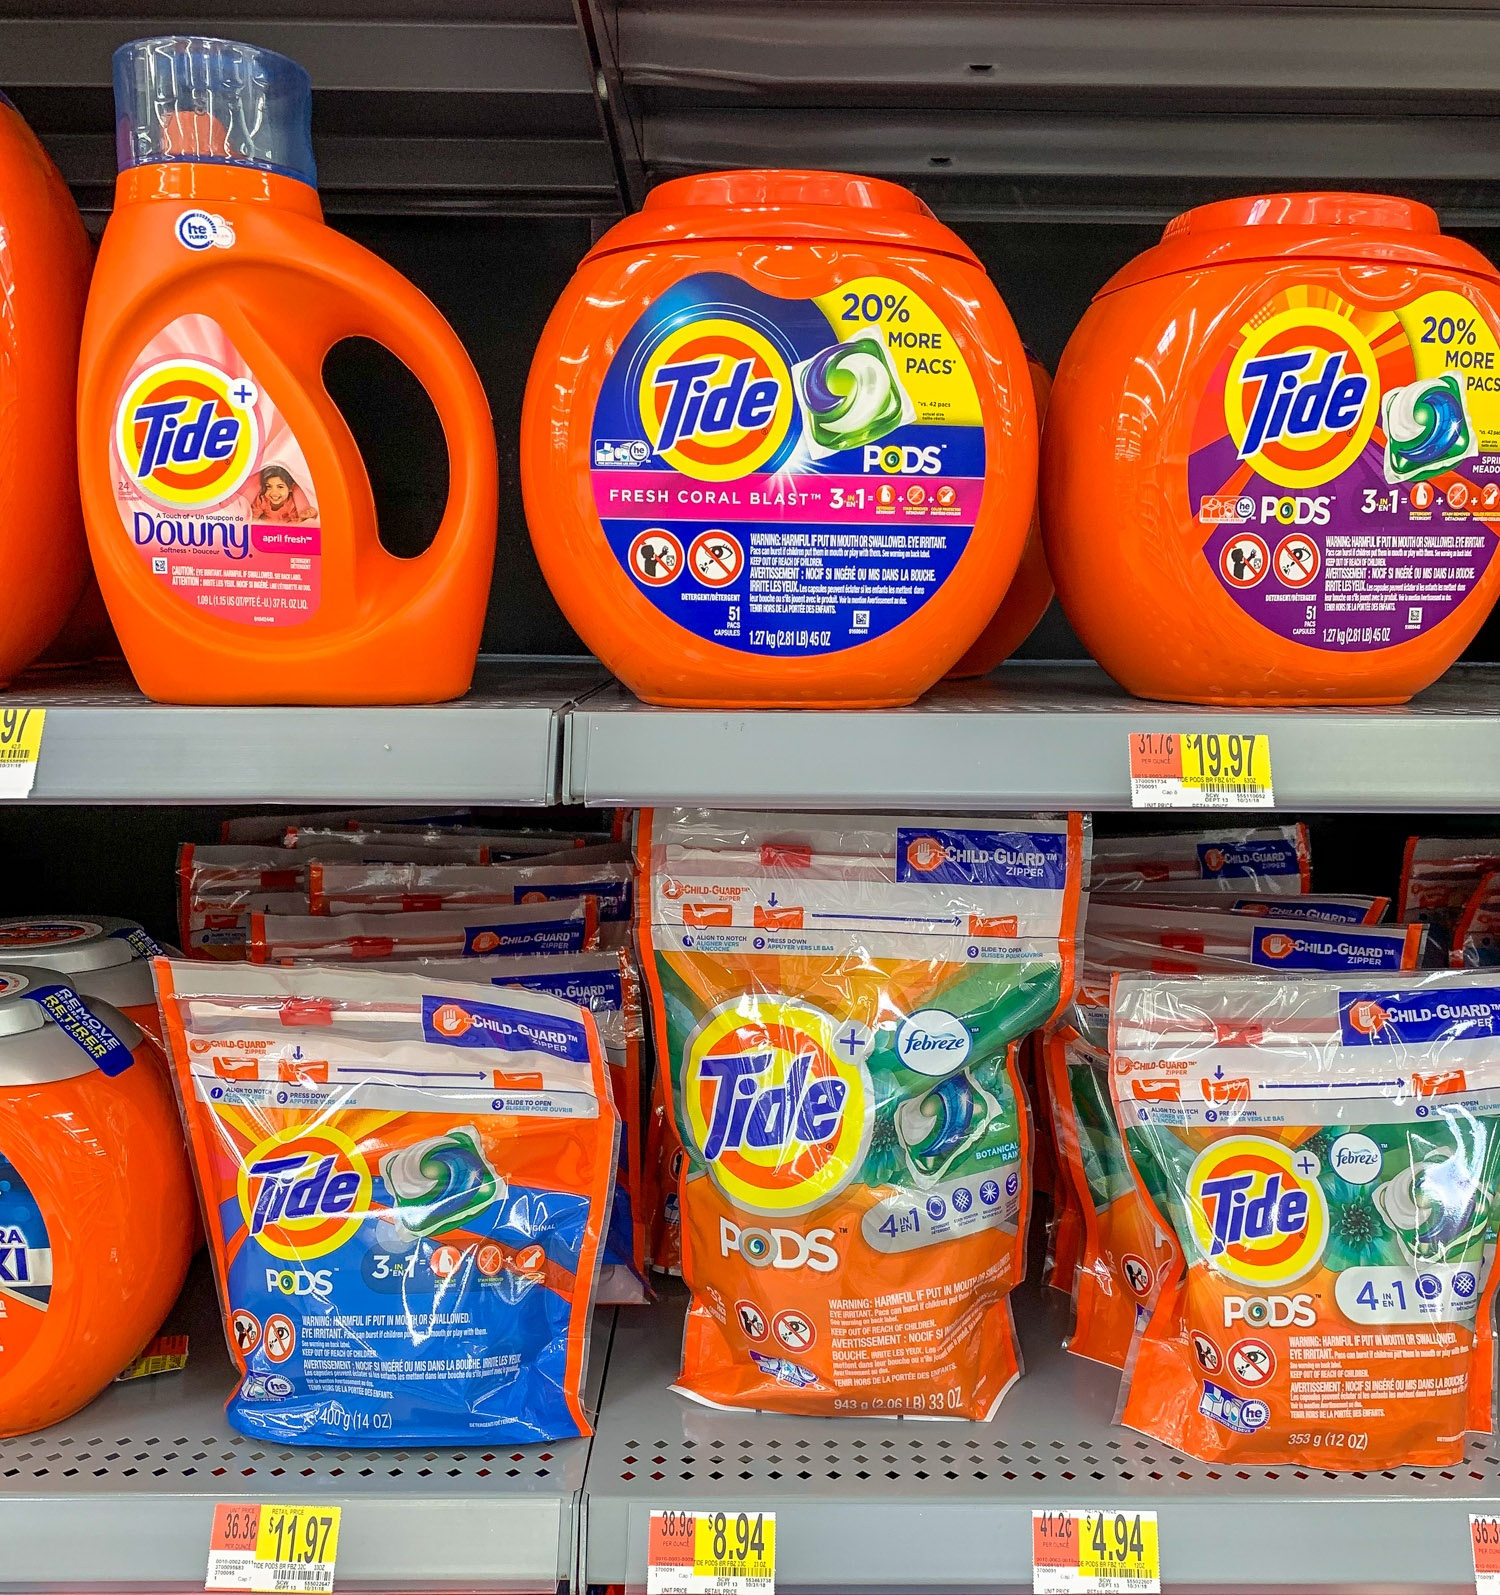 Hot* 2 More New Printable Tide Coupons + Deals At Target & Walmart - Tide Coupons Free Printable